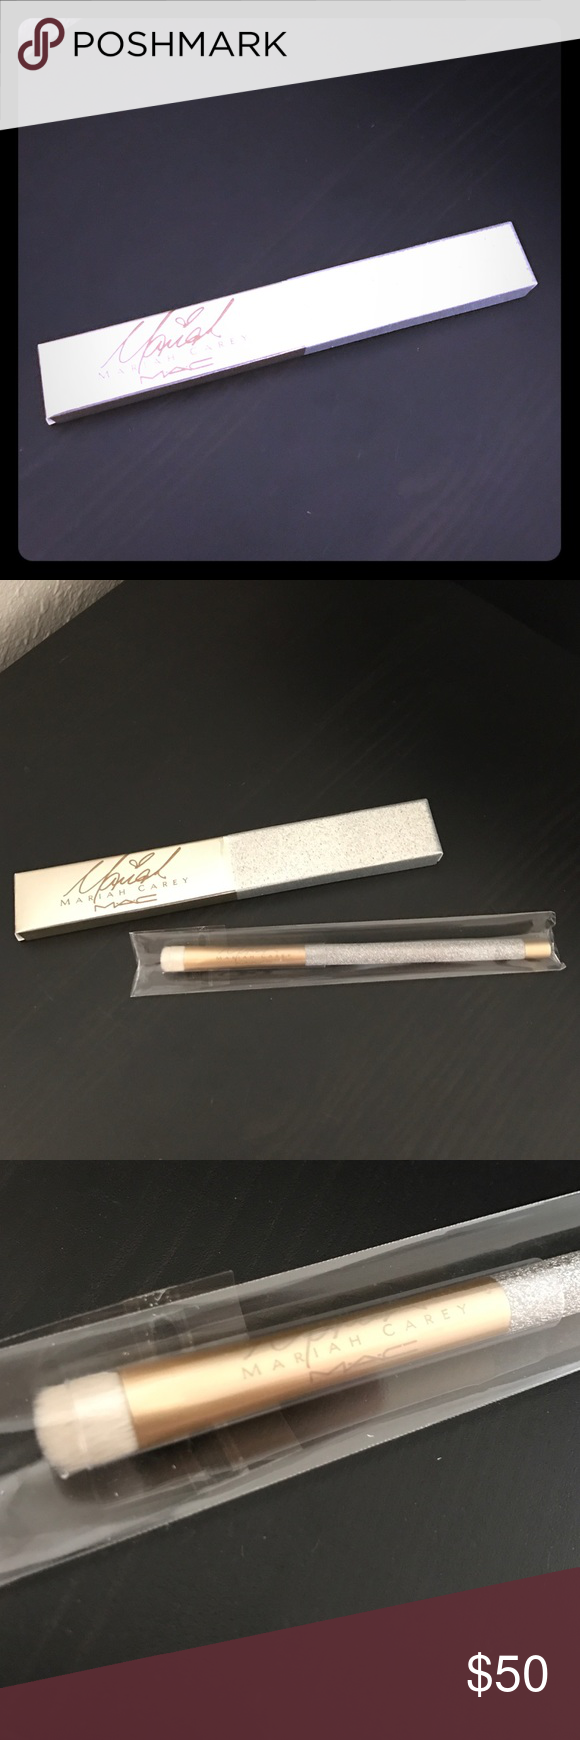 Flashsale mac x mariah eye shader brush nwt my posh picks